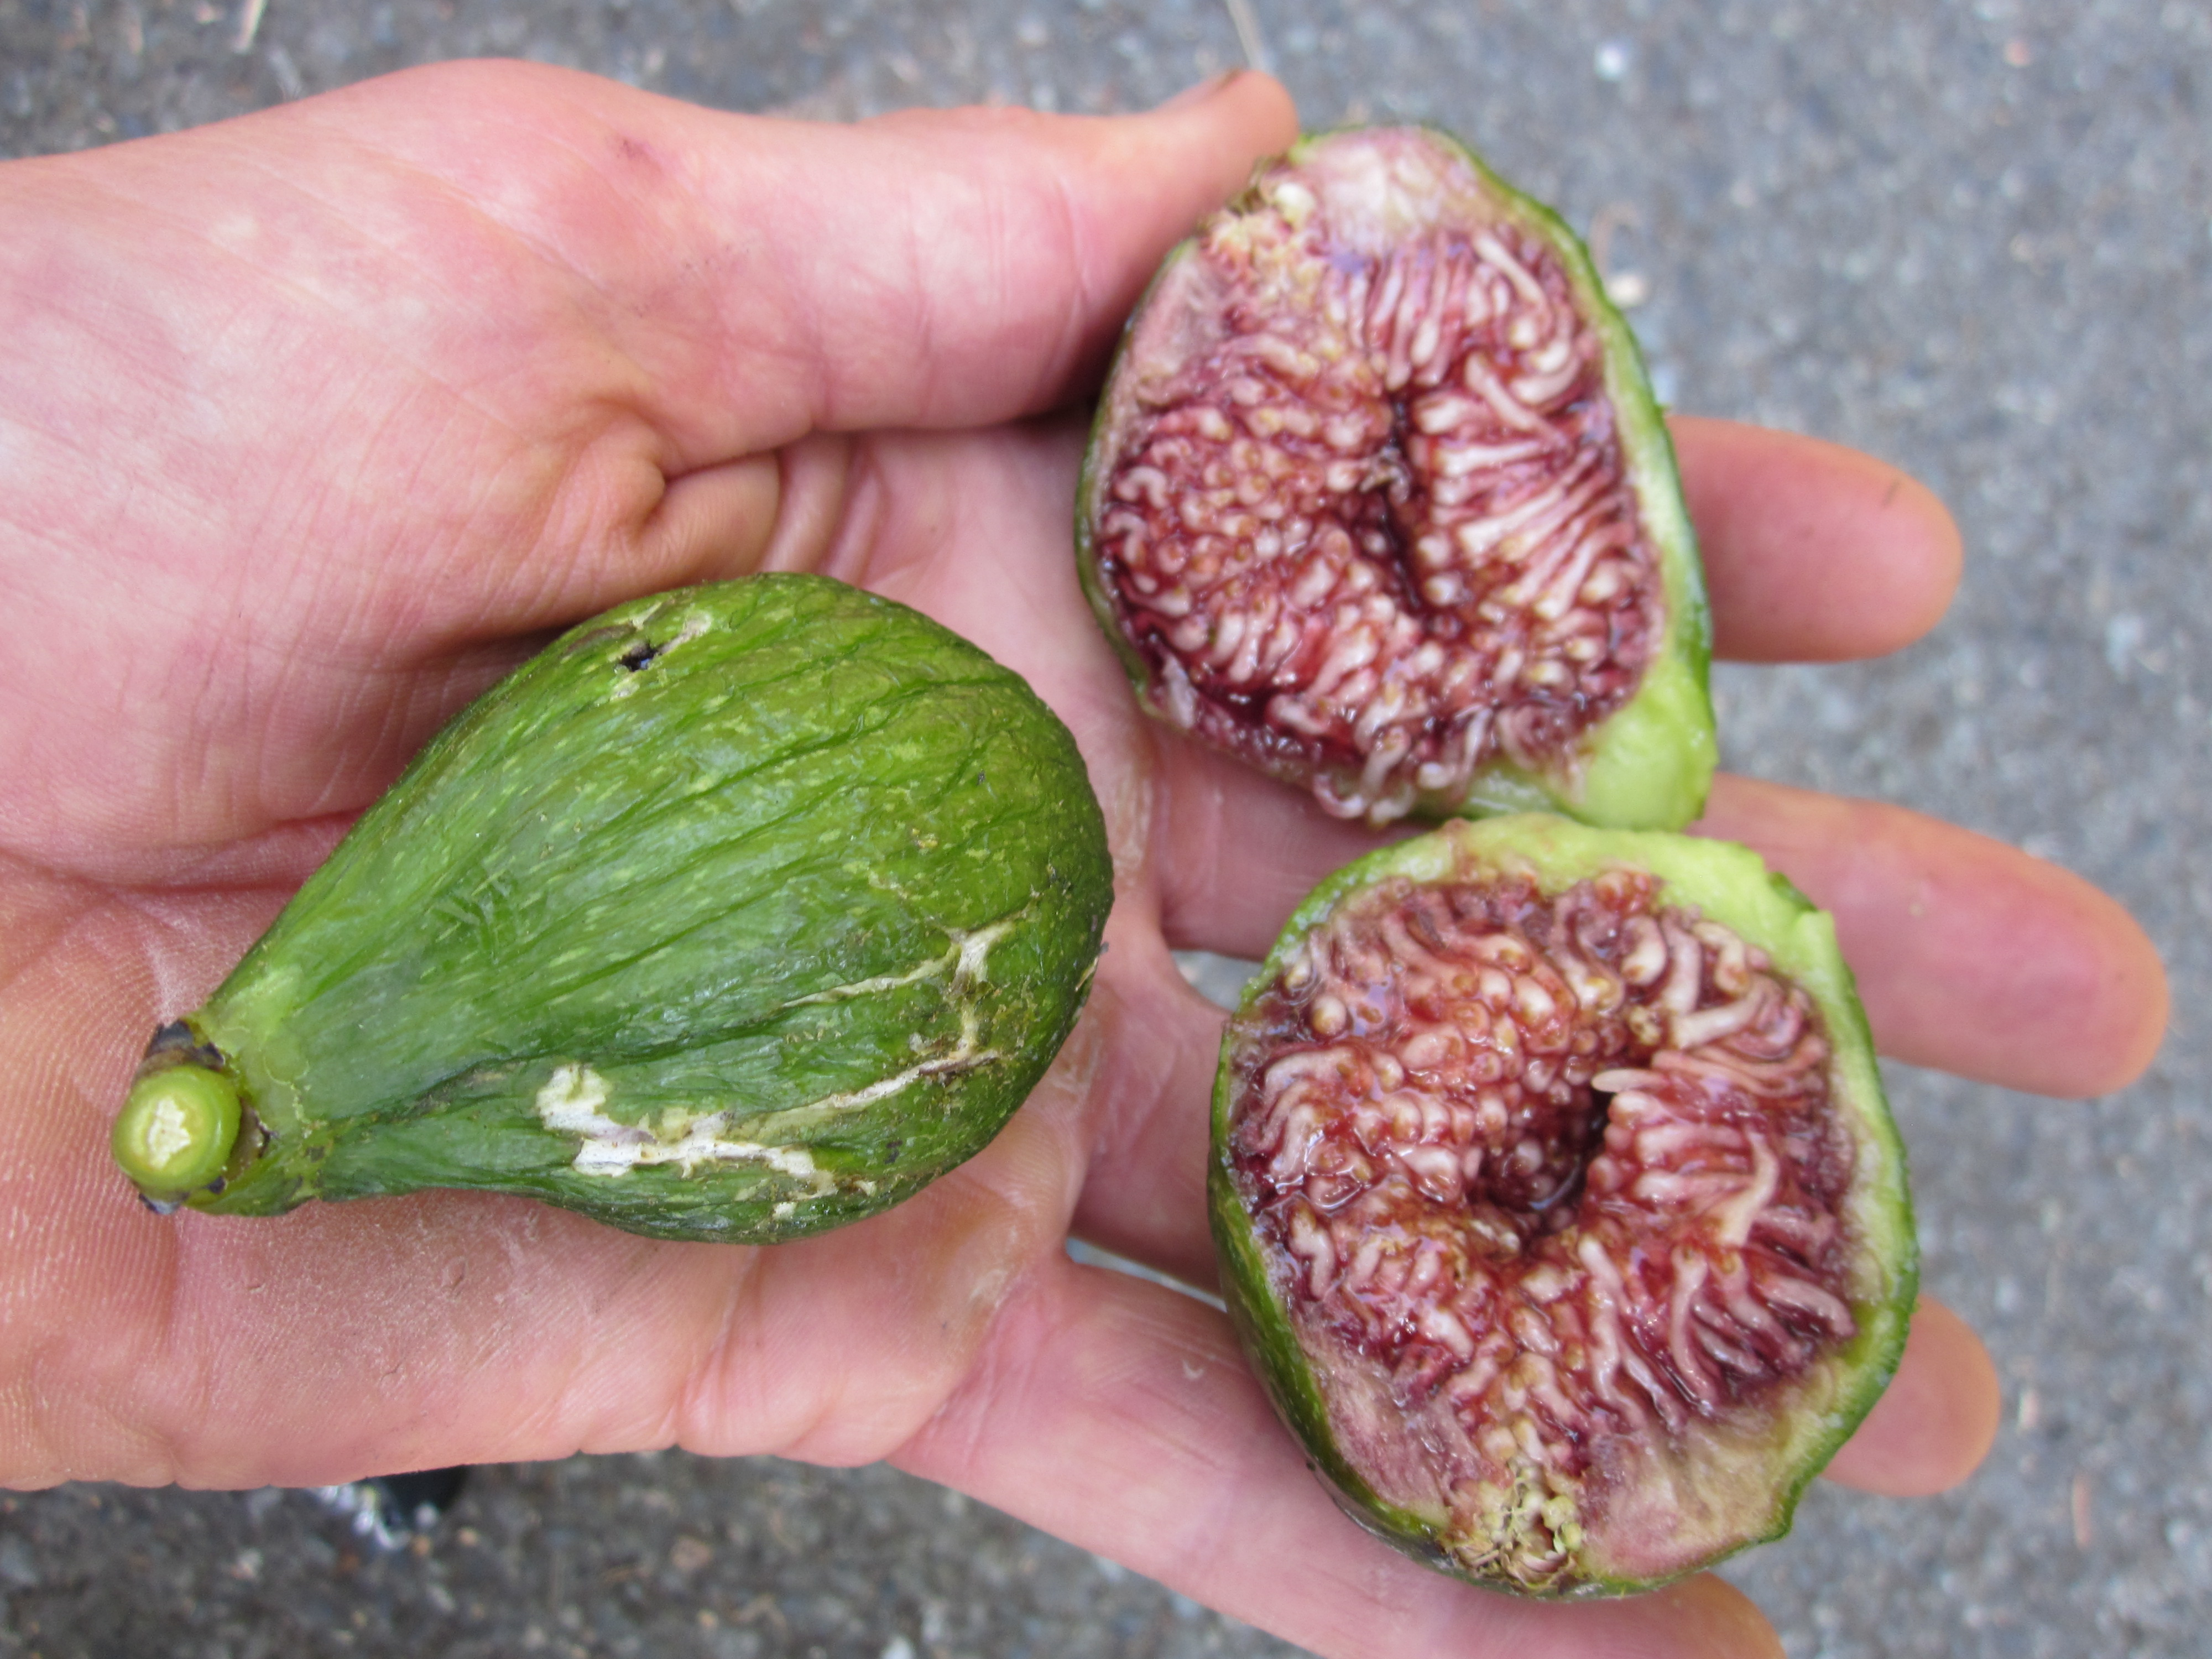 What fruit grows in Turkey In May, what can I try